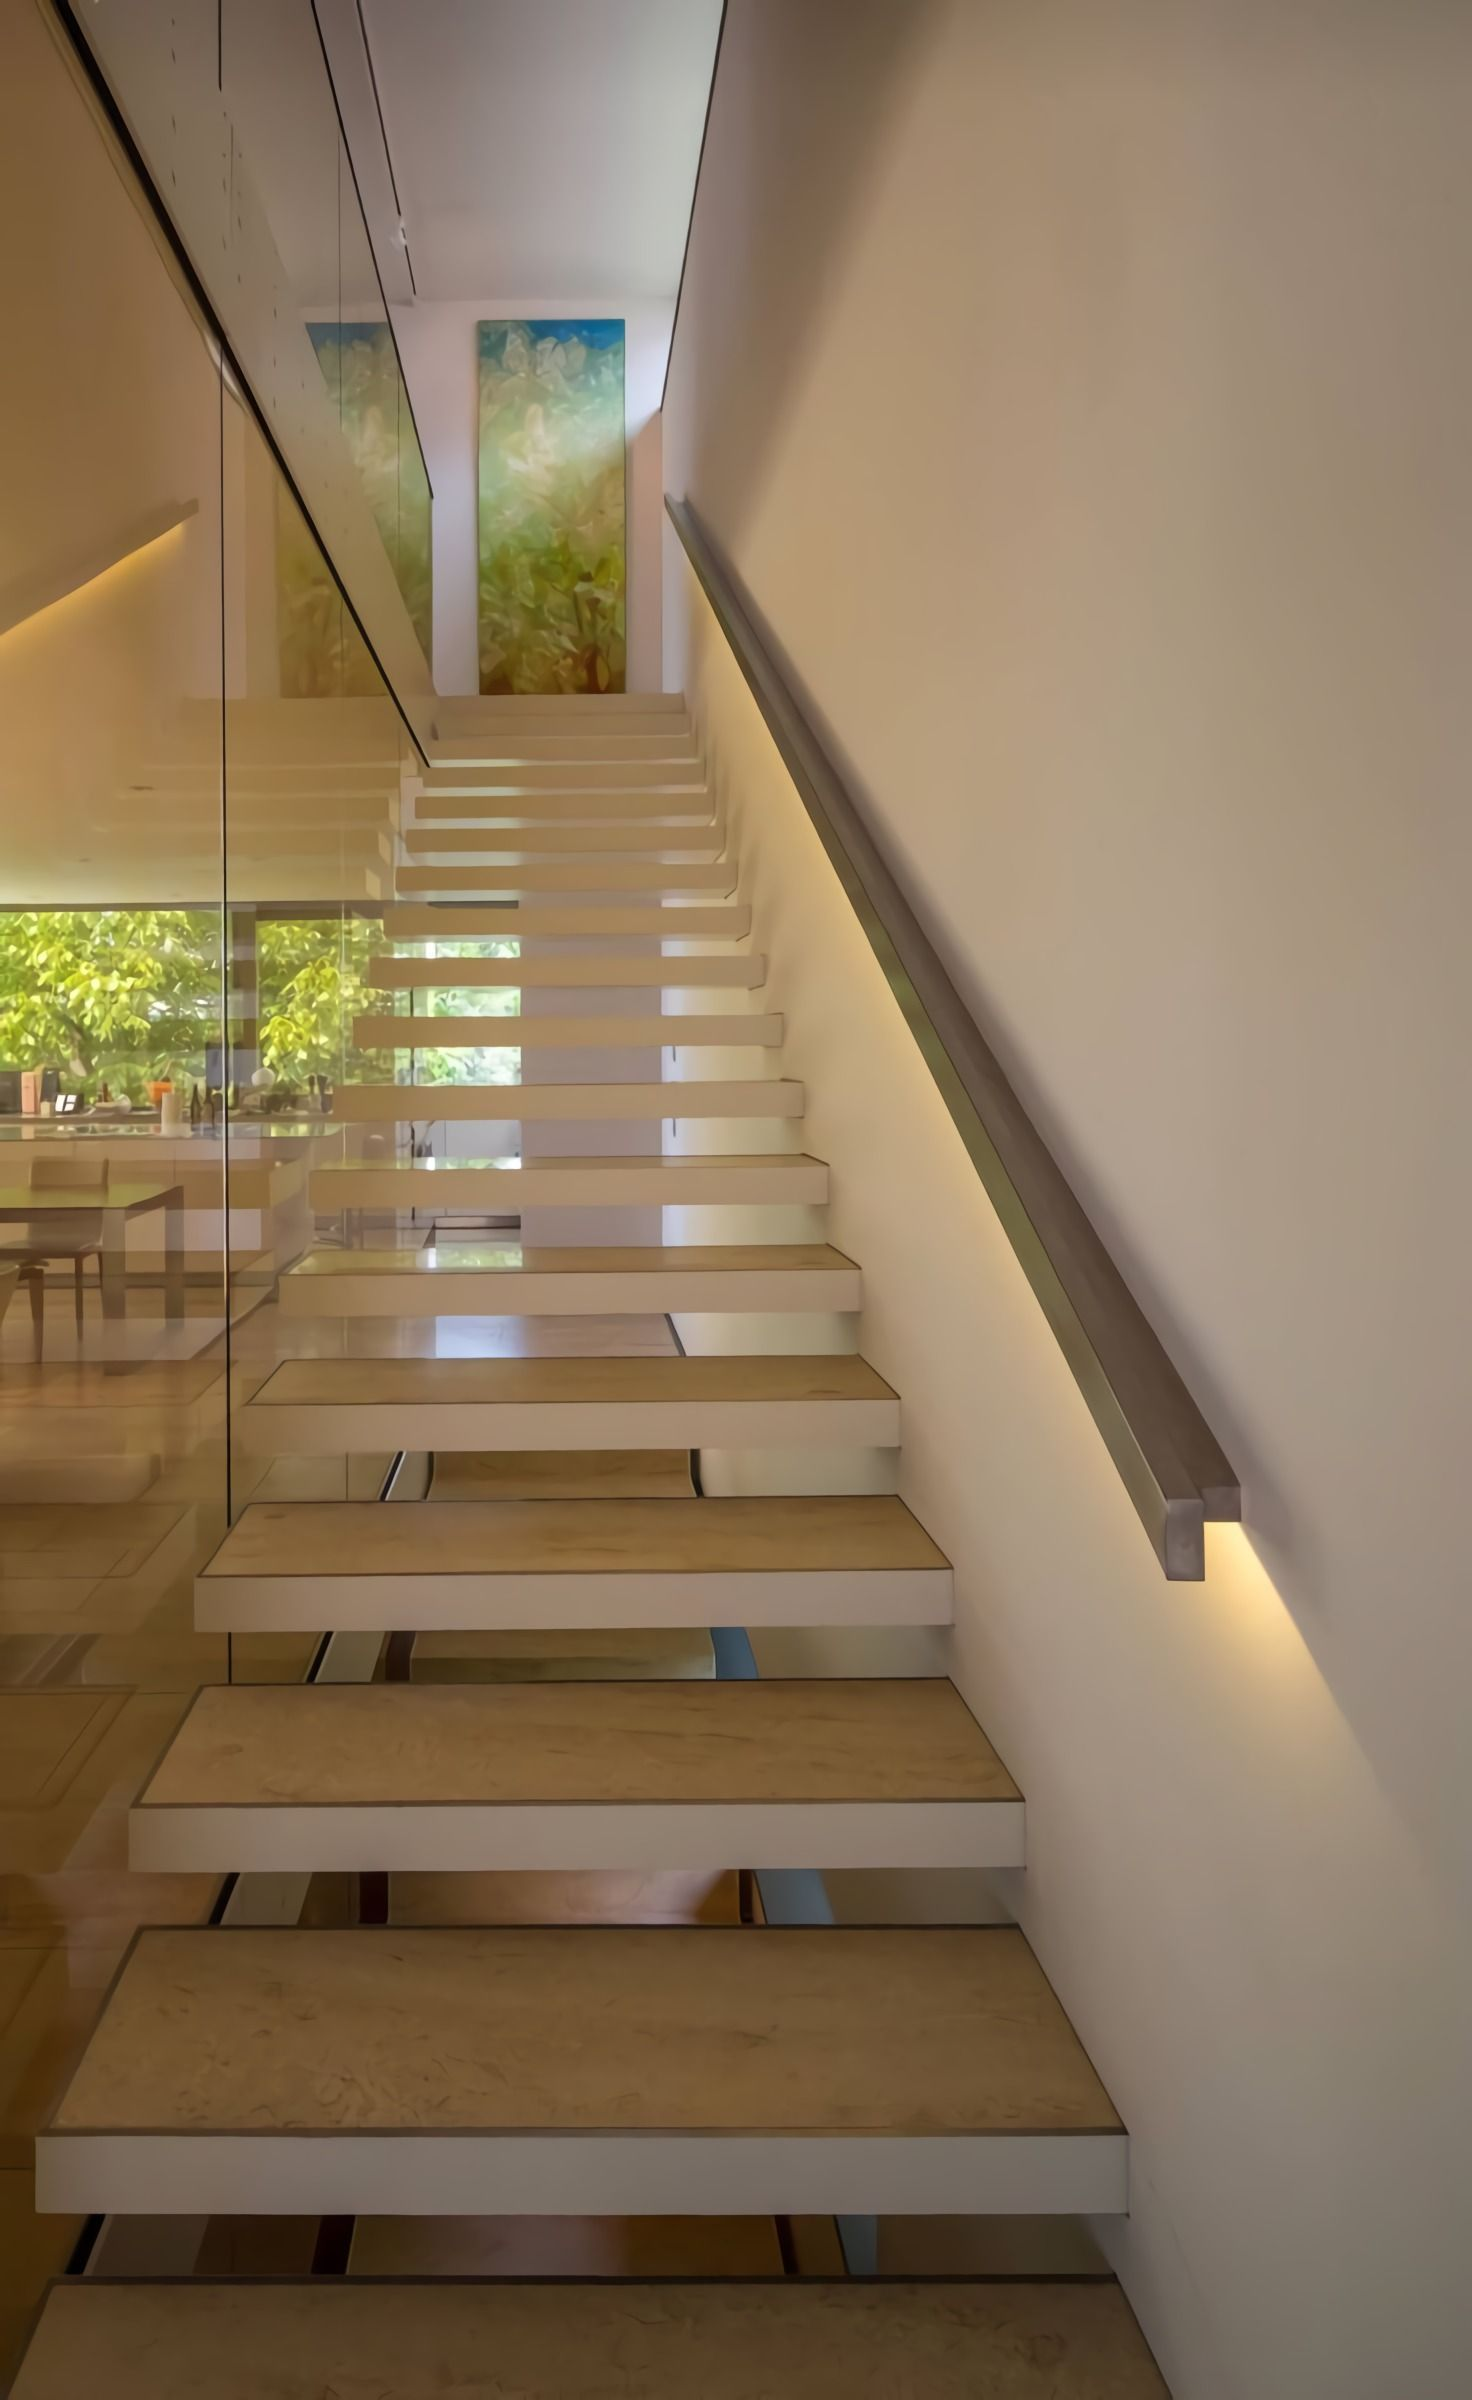 17 Light Stairs Ideas You Can Start Using Today Enthusiasthome In 2020 Stair Handrail Staircase Lighting Ideas Staircase Handrail